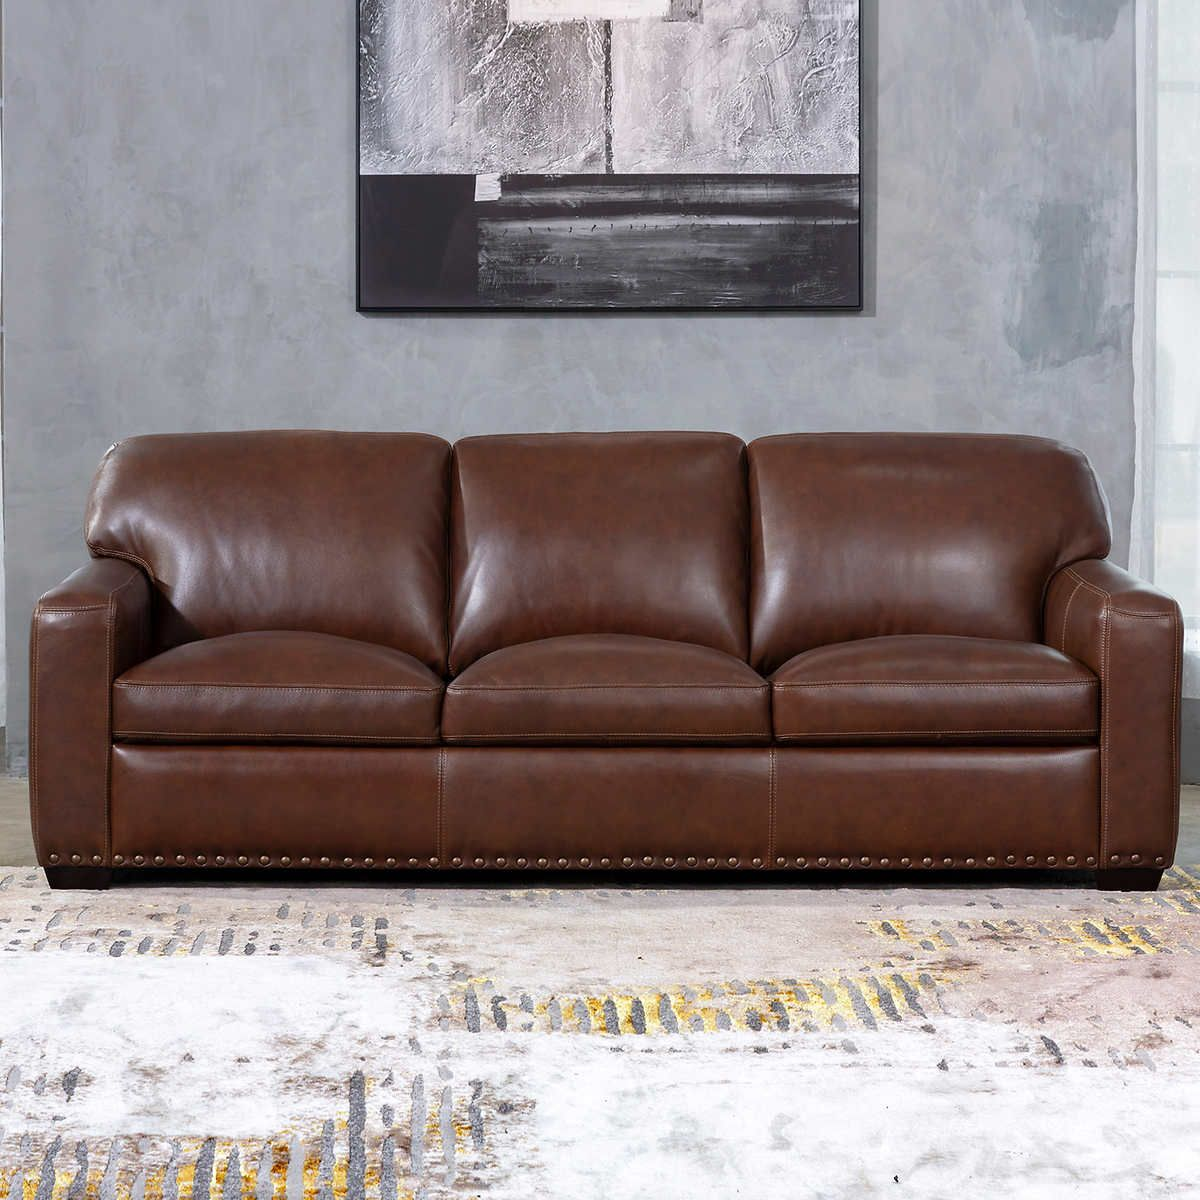 Winslow Brown Leather Sofa in 2020 Brown leather sofa